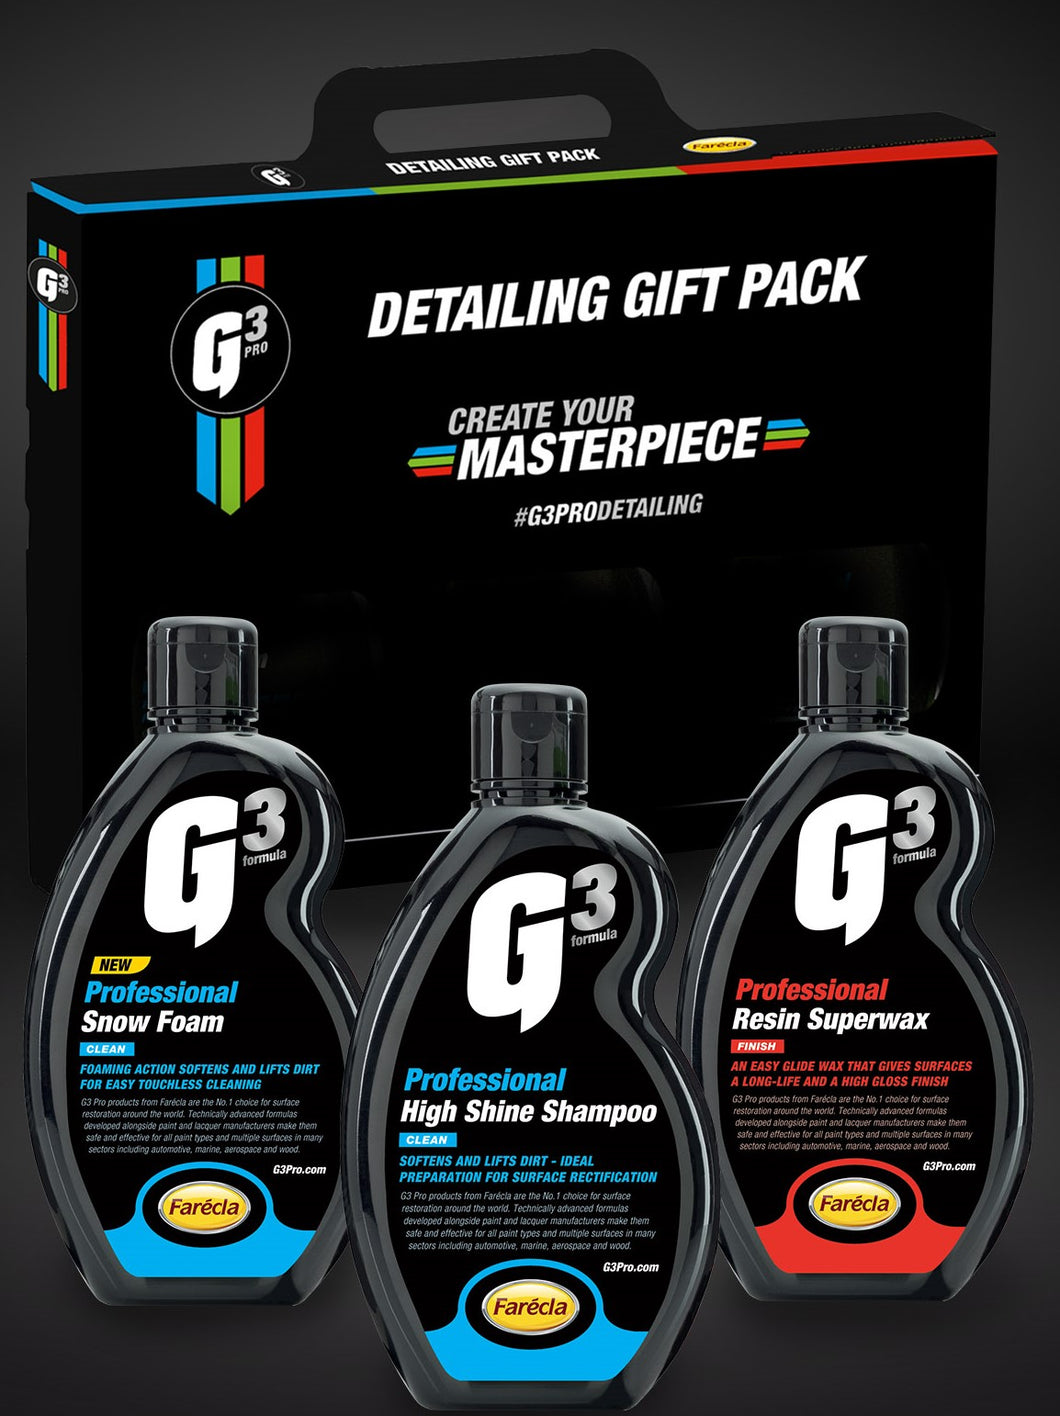 EXTERIOR GIFT BOX - CLEAN & PROTECT - Auto Fresh Detailing